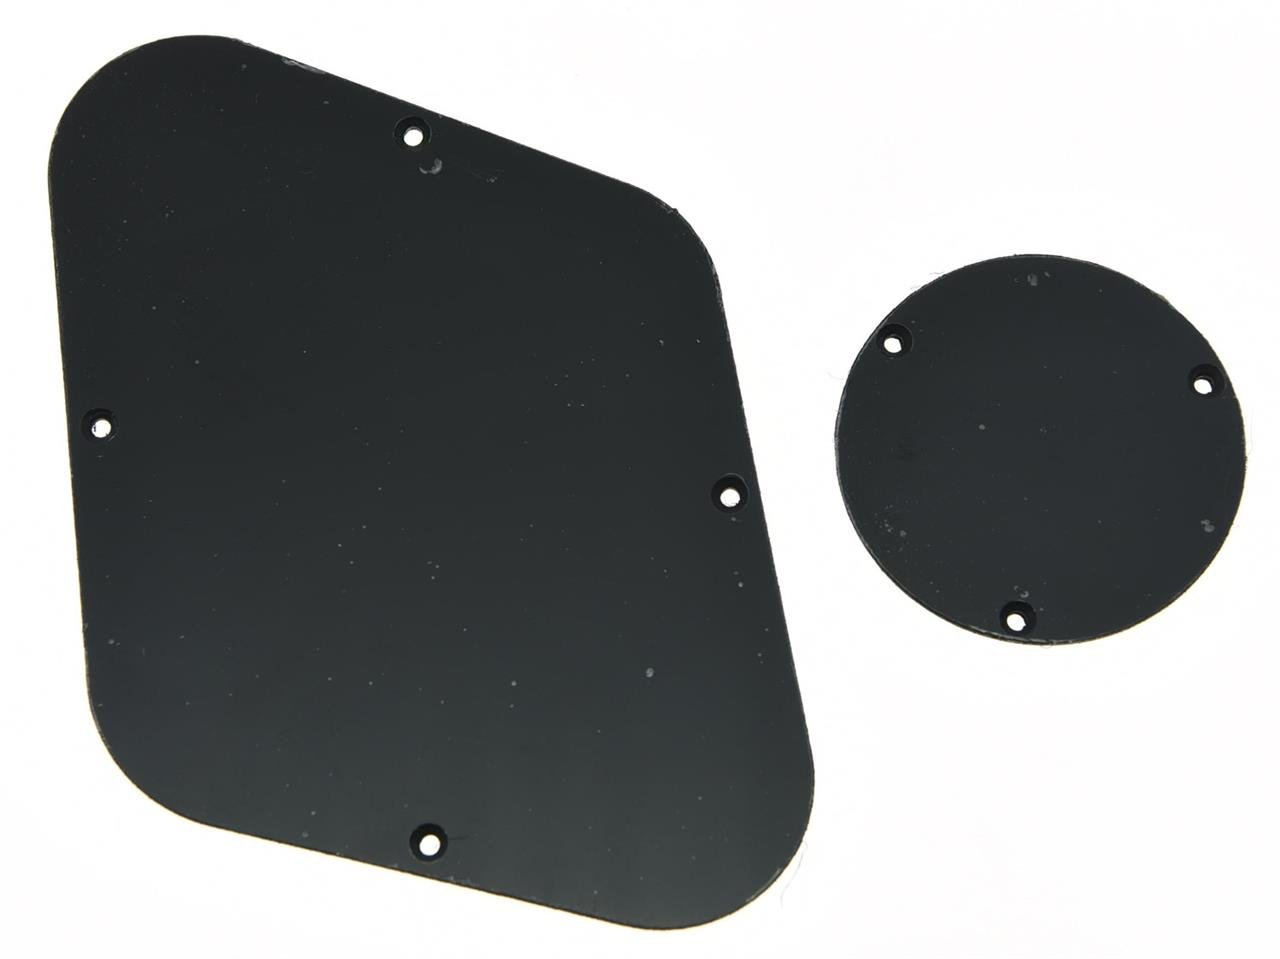 KAISH Solid Black 1 Ply LP Rear Control Plate Switch Plate Cavity Cover For Epiphone Les Paul Kaish Music K894